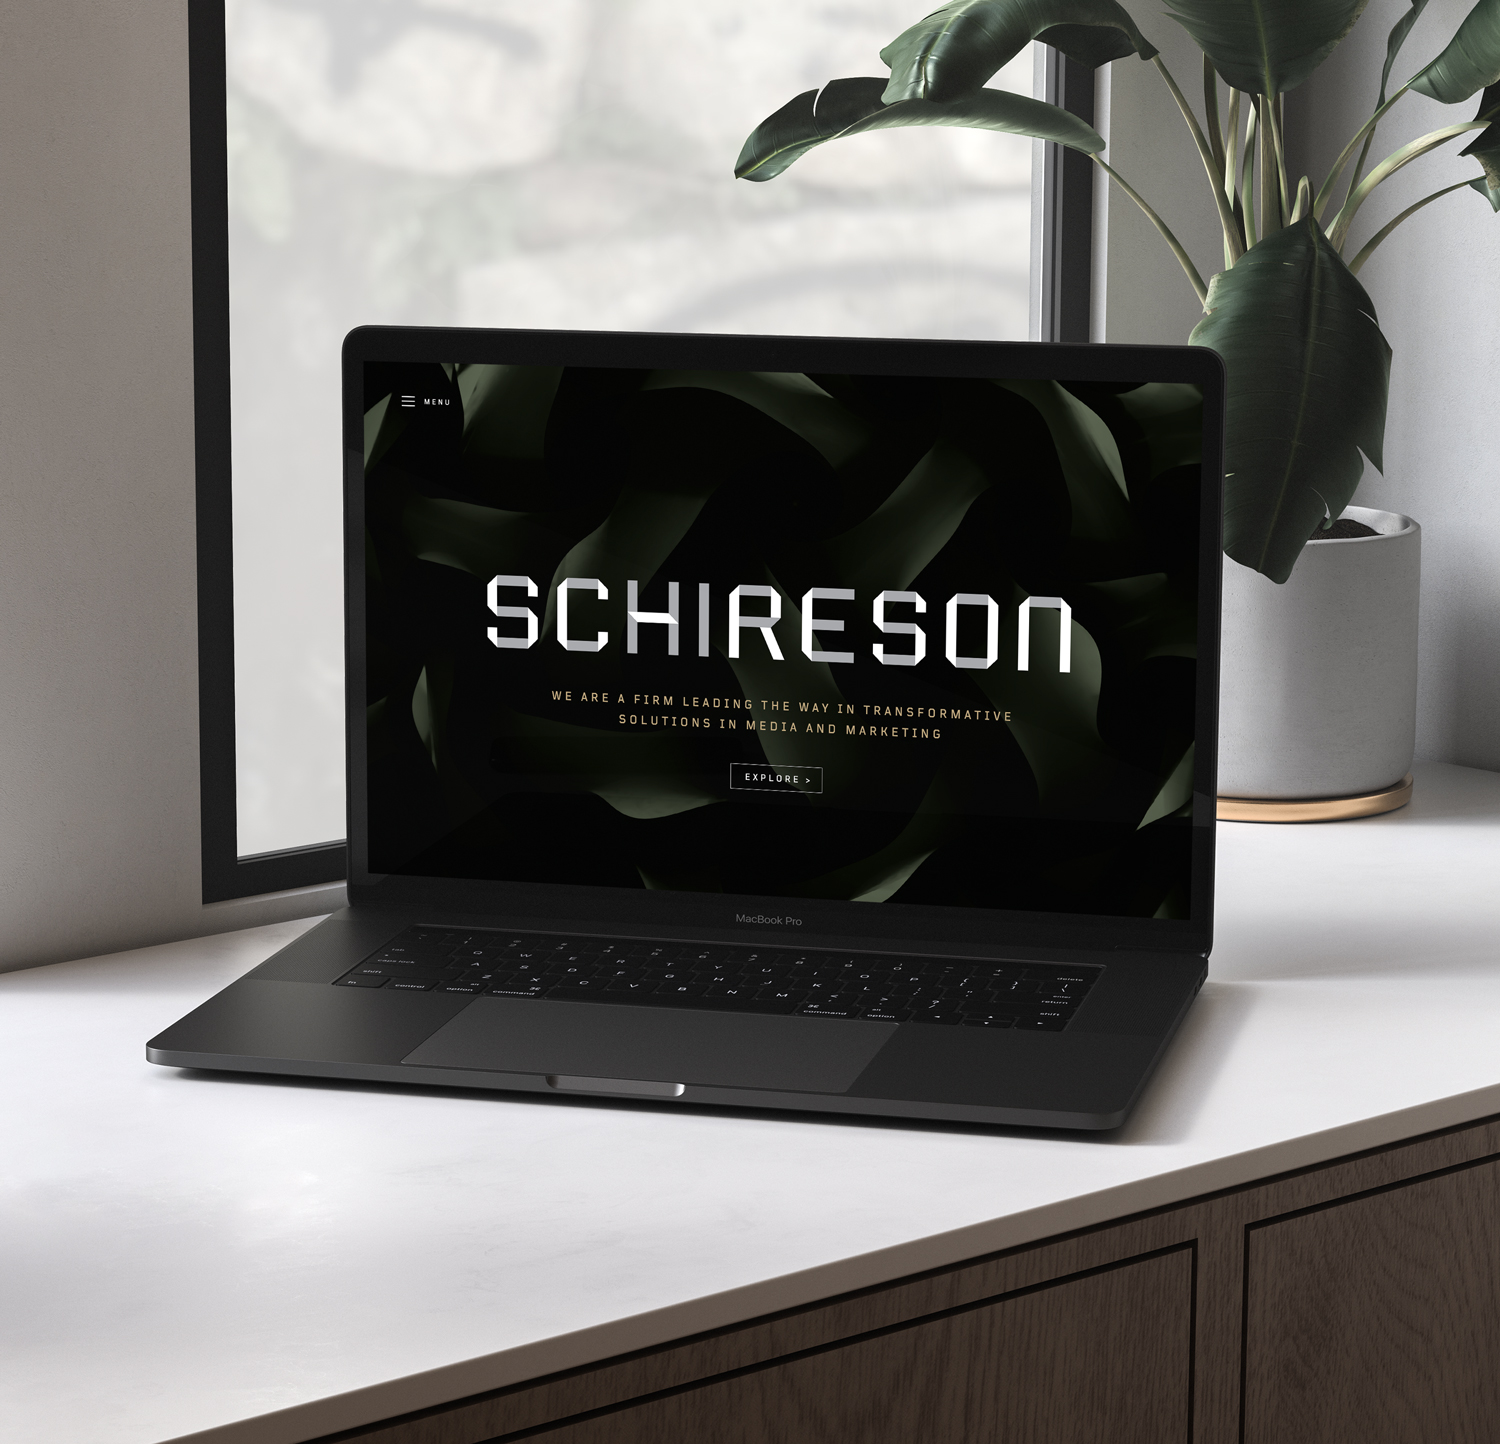 Schireson-Website-Mockup